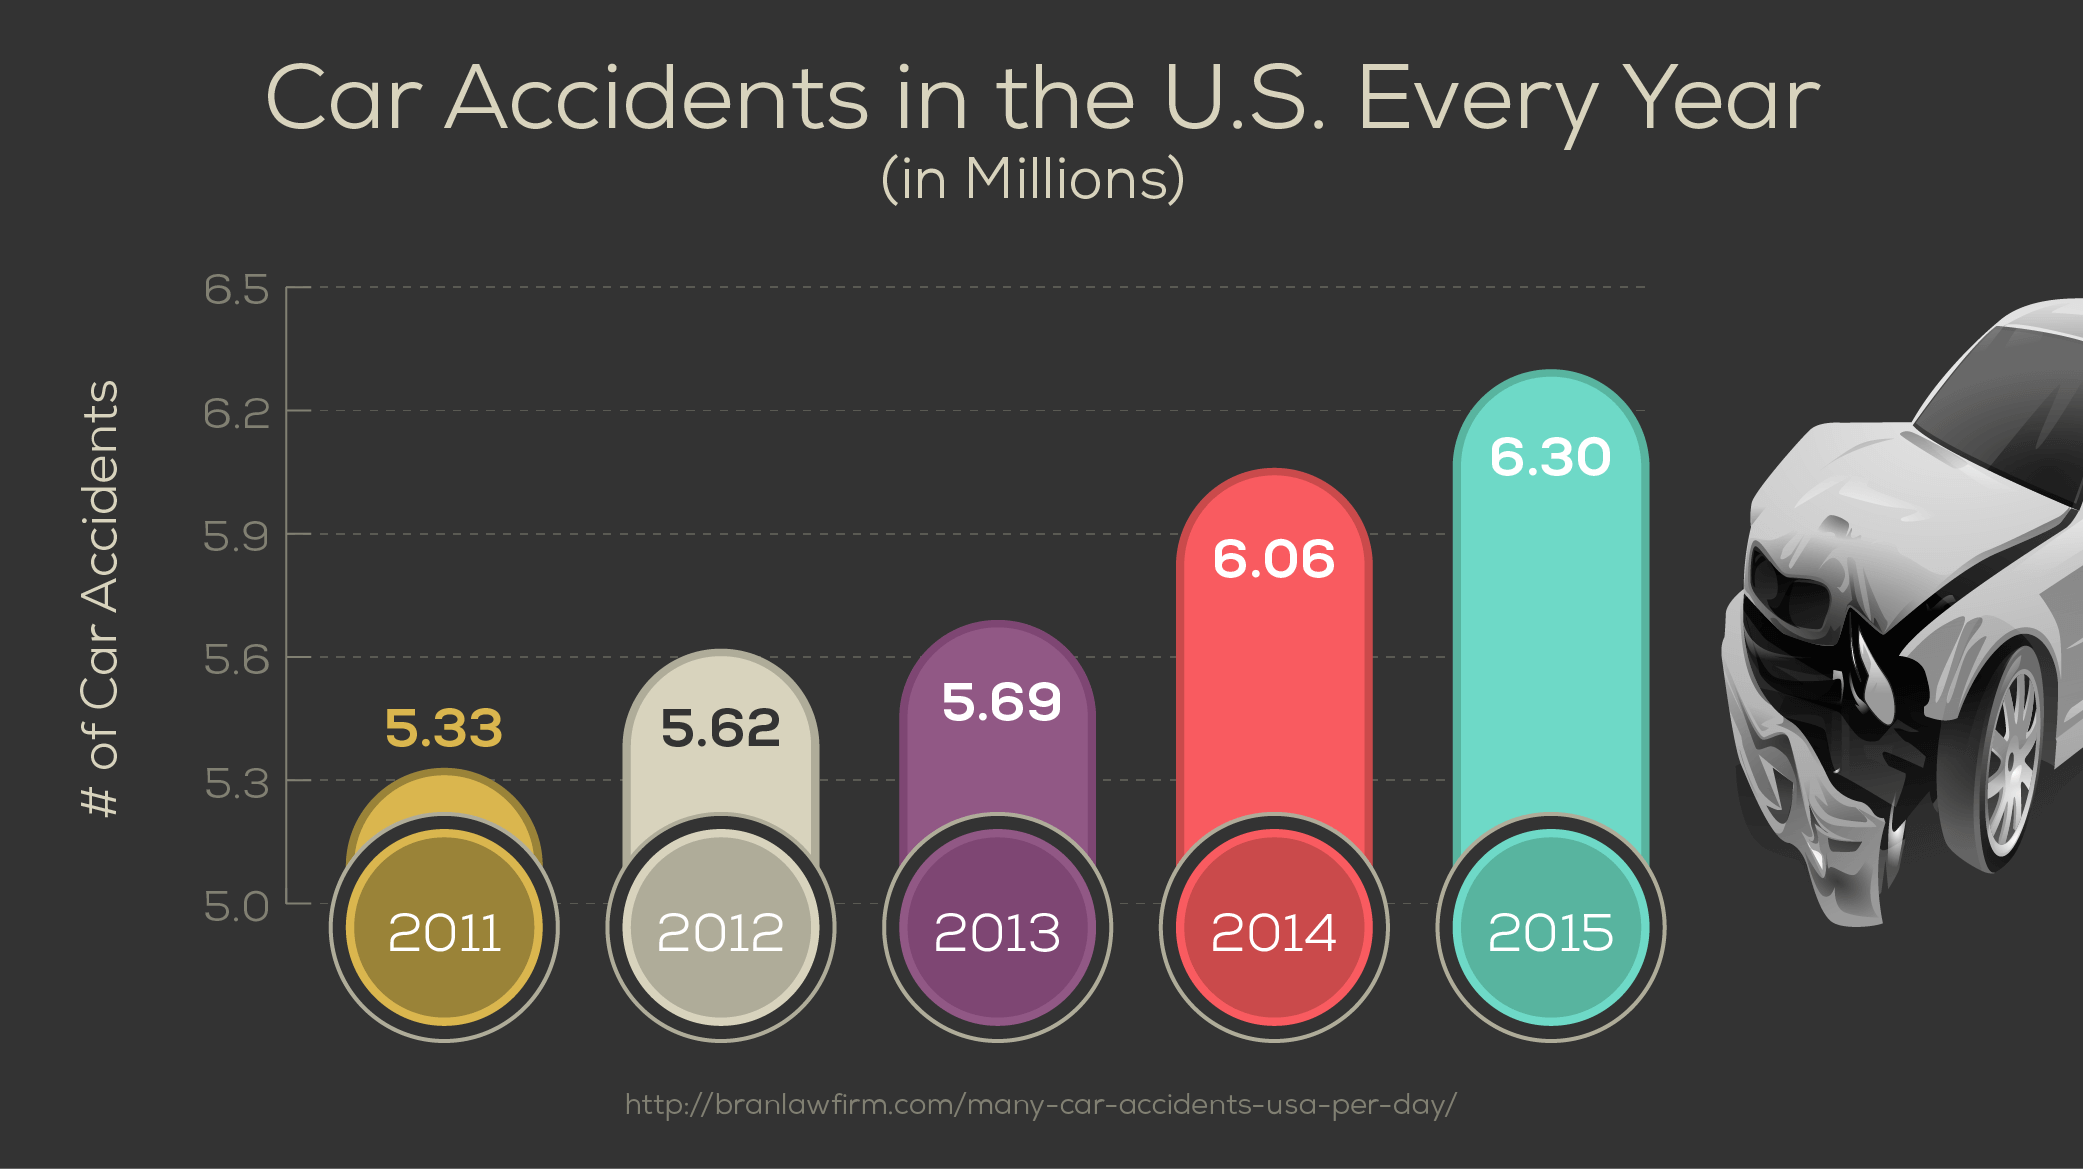 Car Accidents in the U.S. Every Year